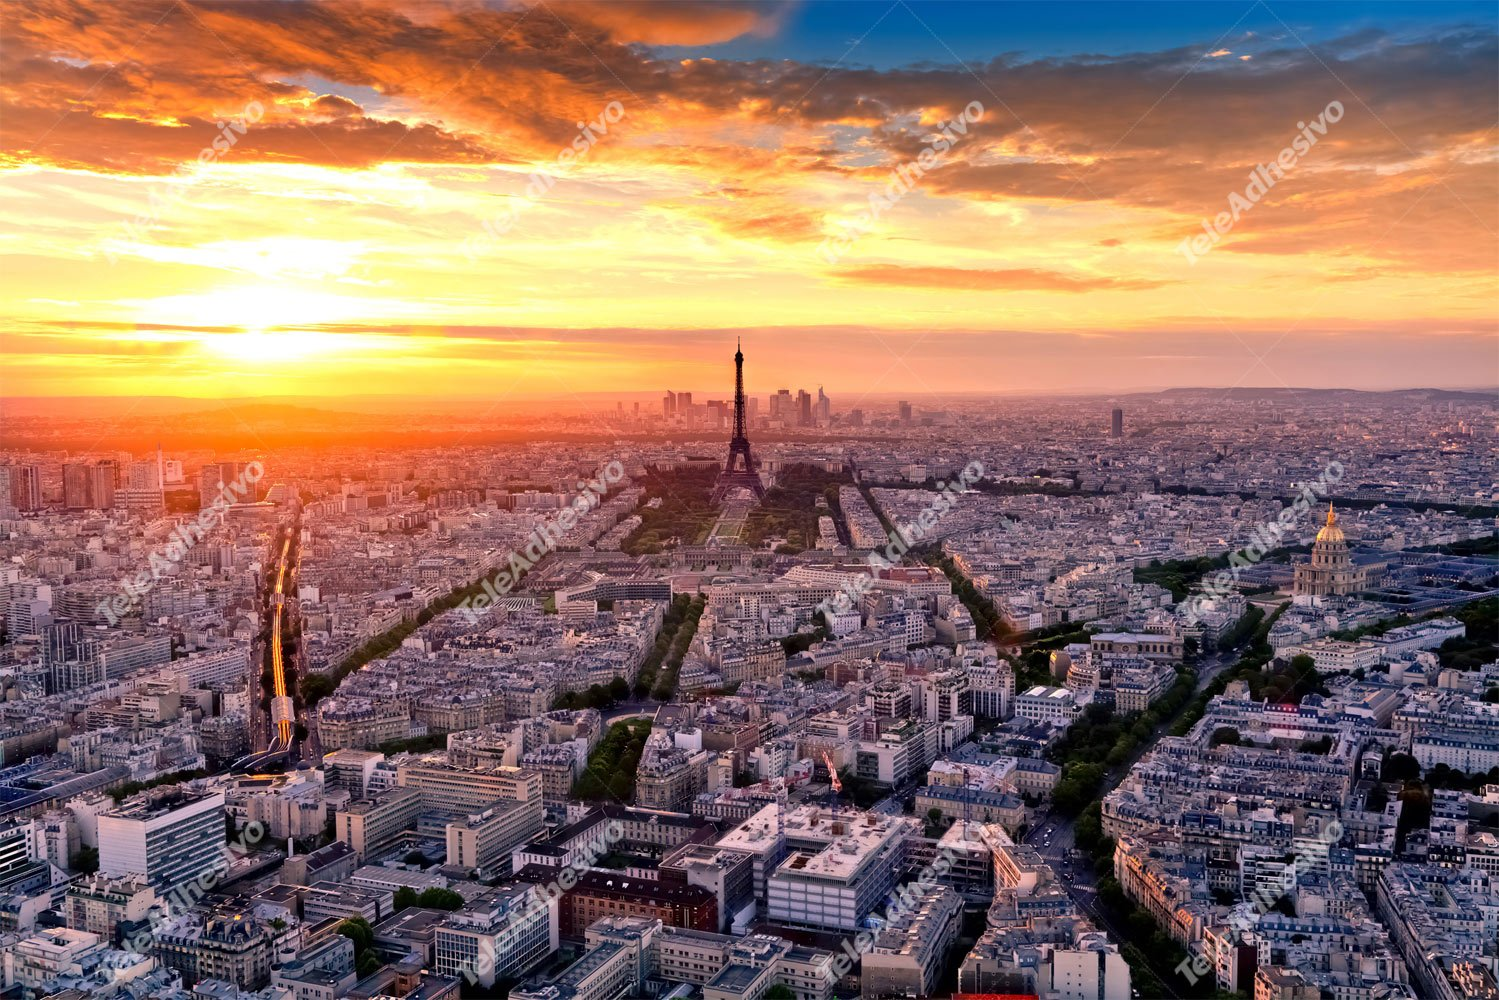 Fototapeten: Paris at sunset